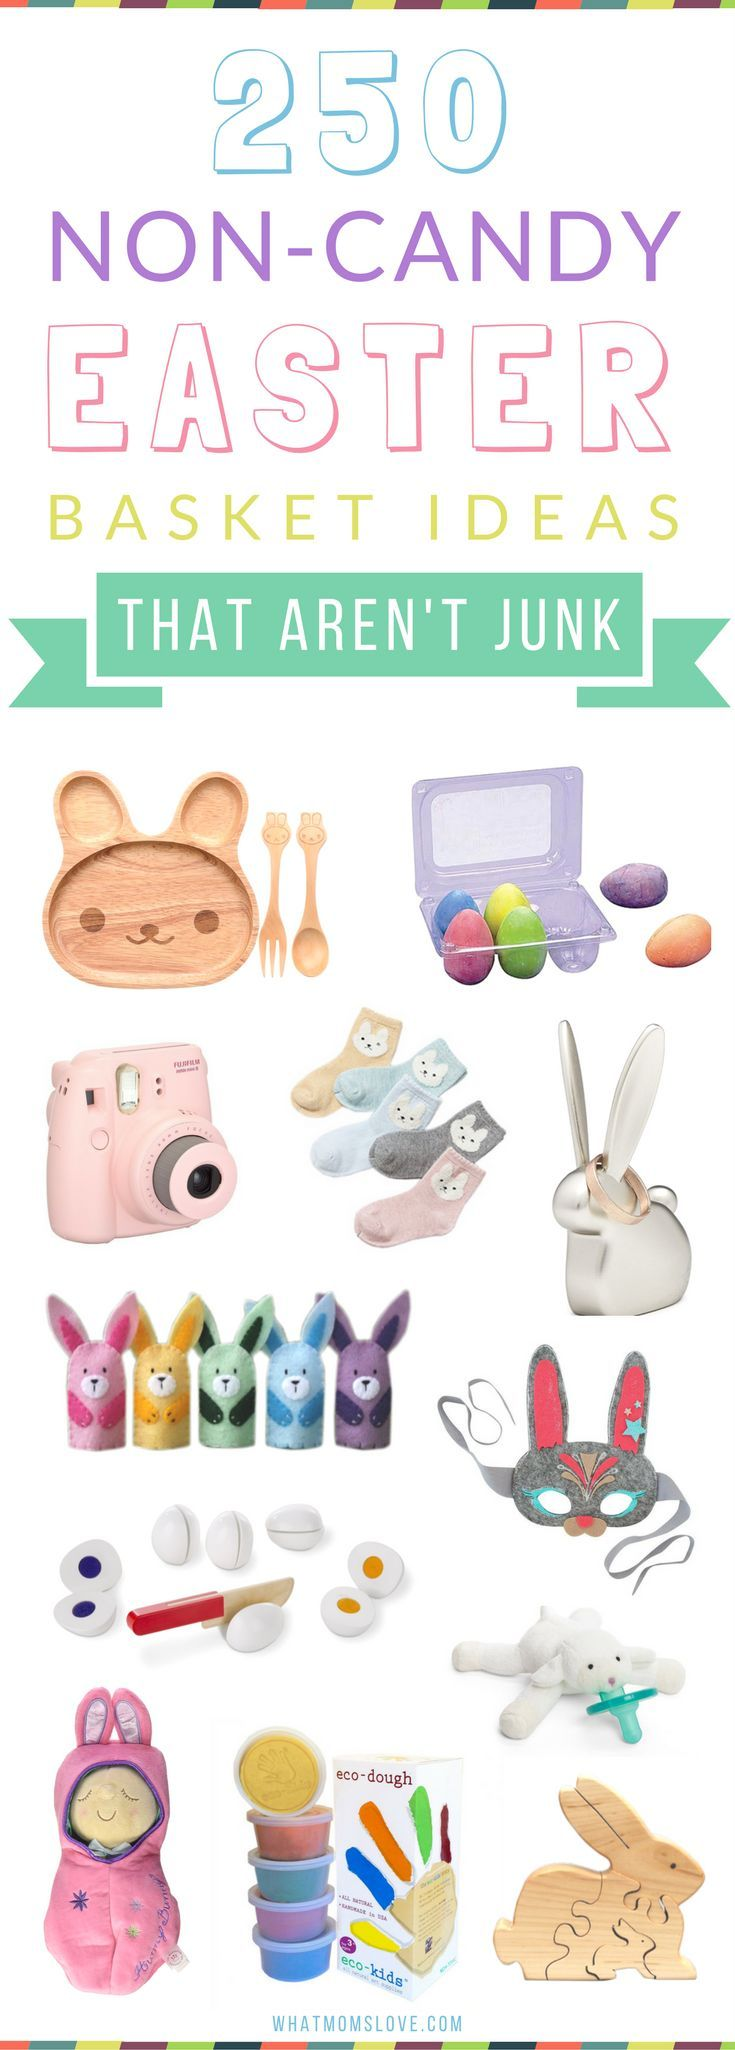 Non-Candy Easter Basket Ideas for Kids Of All Ages - from babies to toddlers, tweens to teens. Unique gifts, goodies, stuffers and fillers for boys and girls that aren't junk! See all 250 fun ideas at http://whatmomslove.com